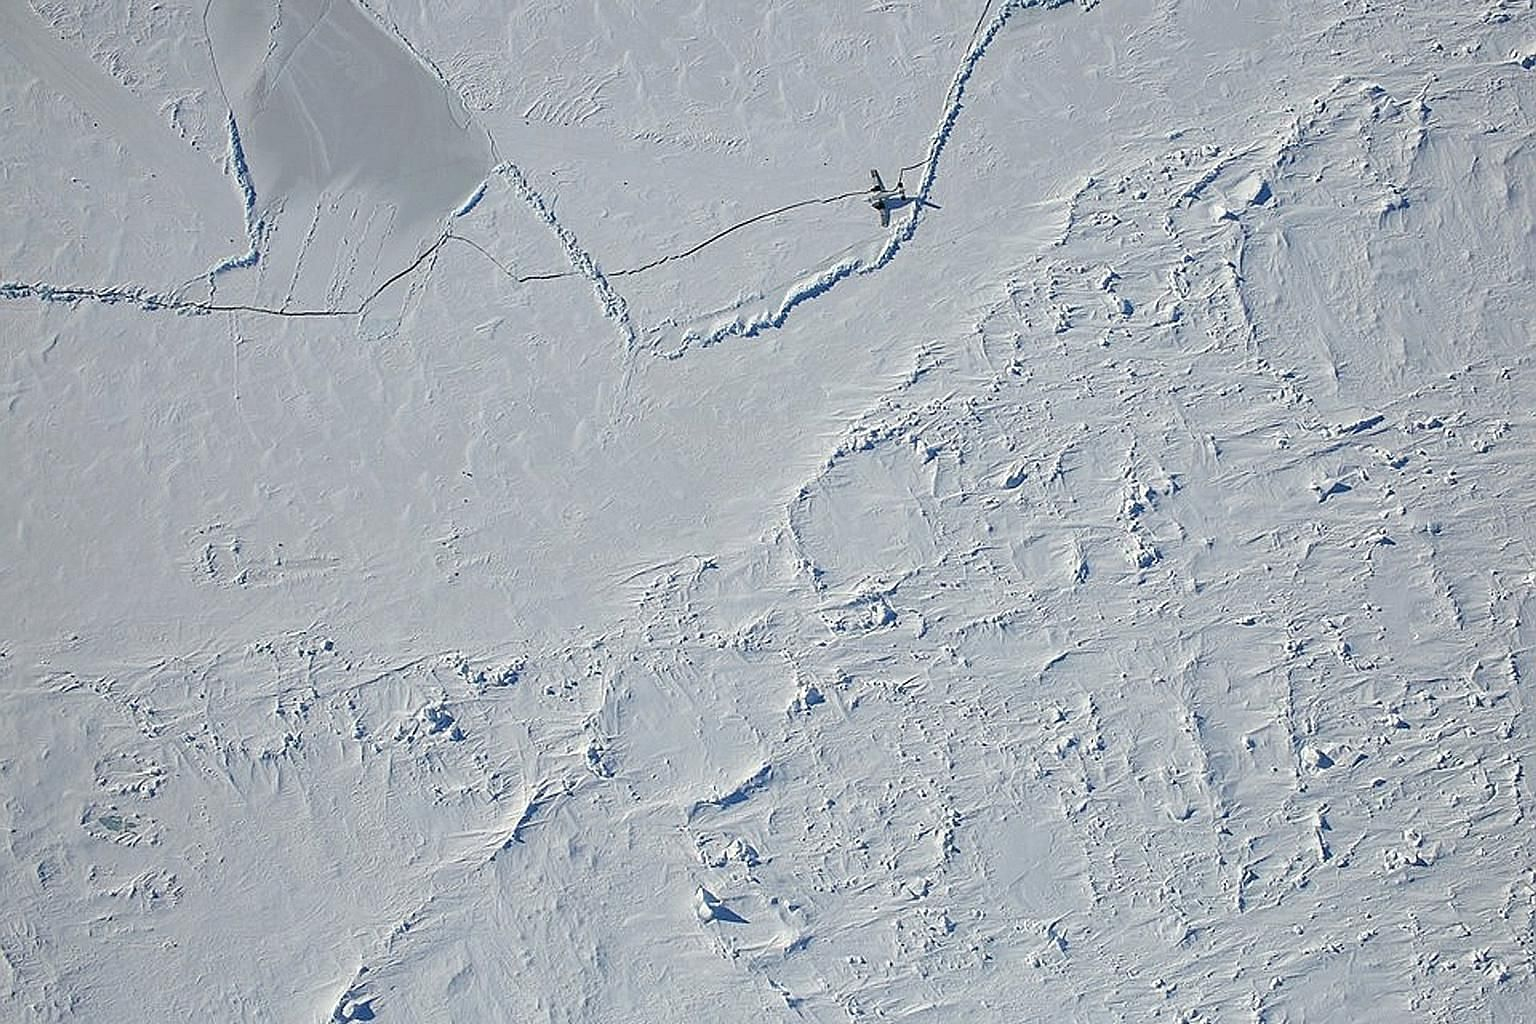 A handout photo from Nasa showing remnants of a US Navy mission in the Arctic Ocean on April 8, seen during a survey flight for Operation IceBridge, Nasa's longest-running airborne mission to monitor polar ice change. The US Coast Guard's outgoing co